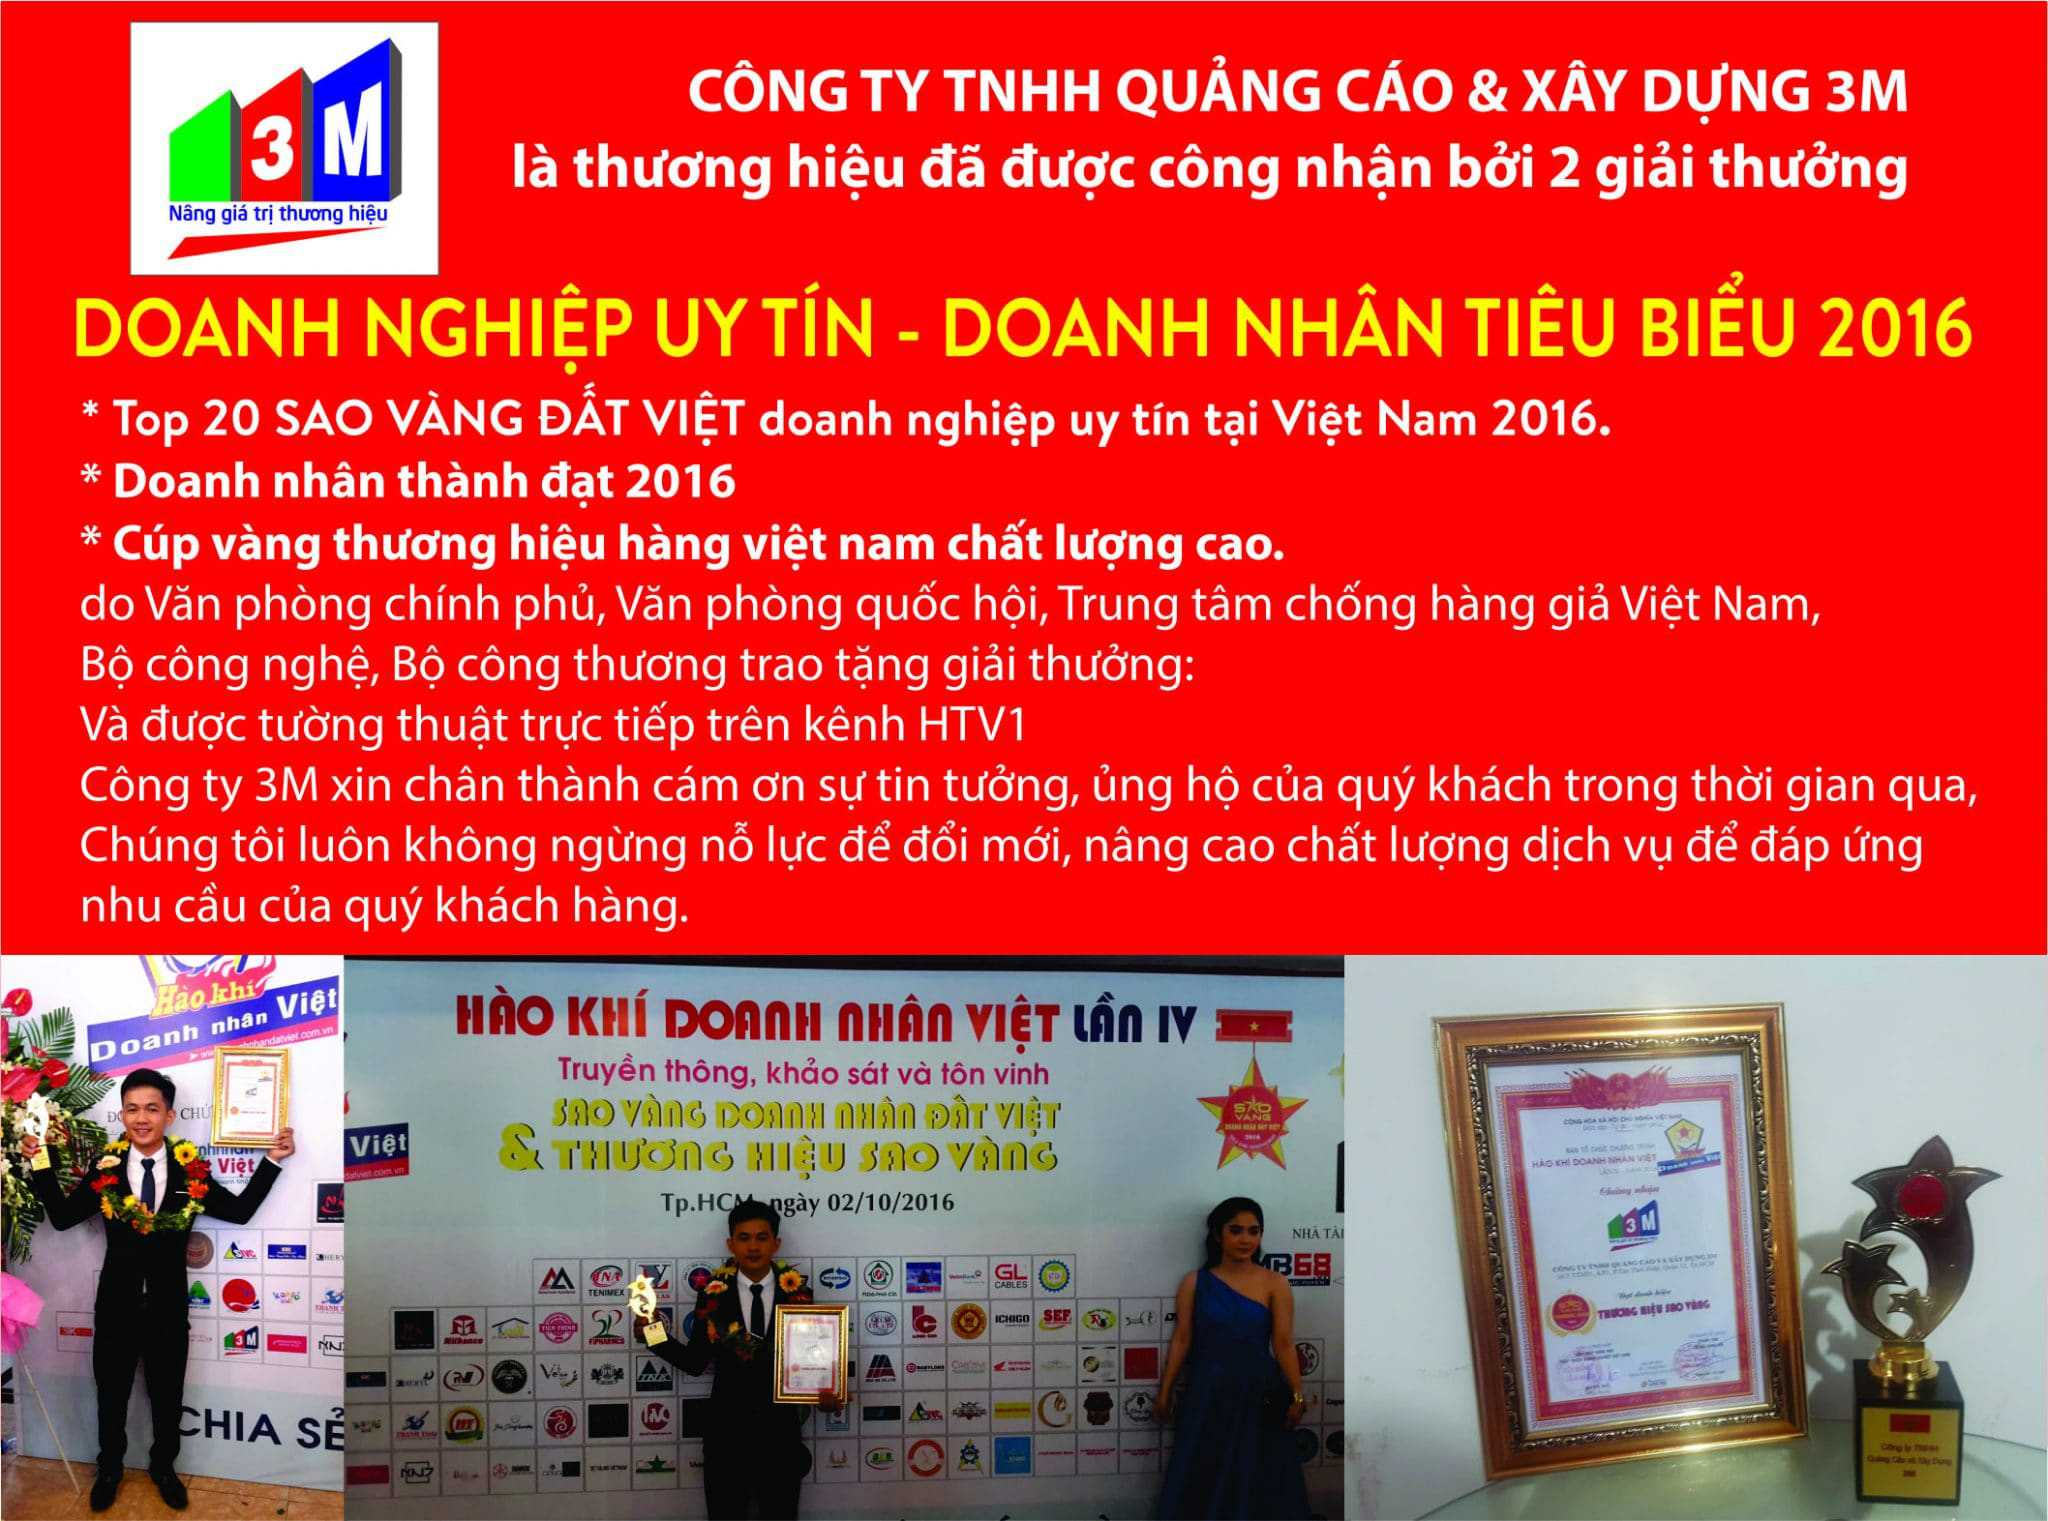 cong ty 3m